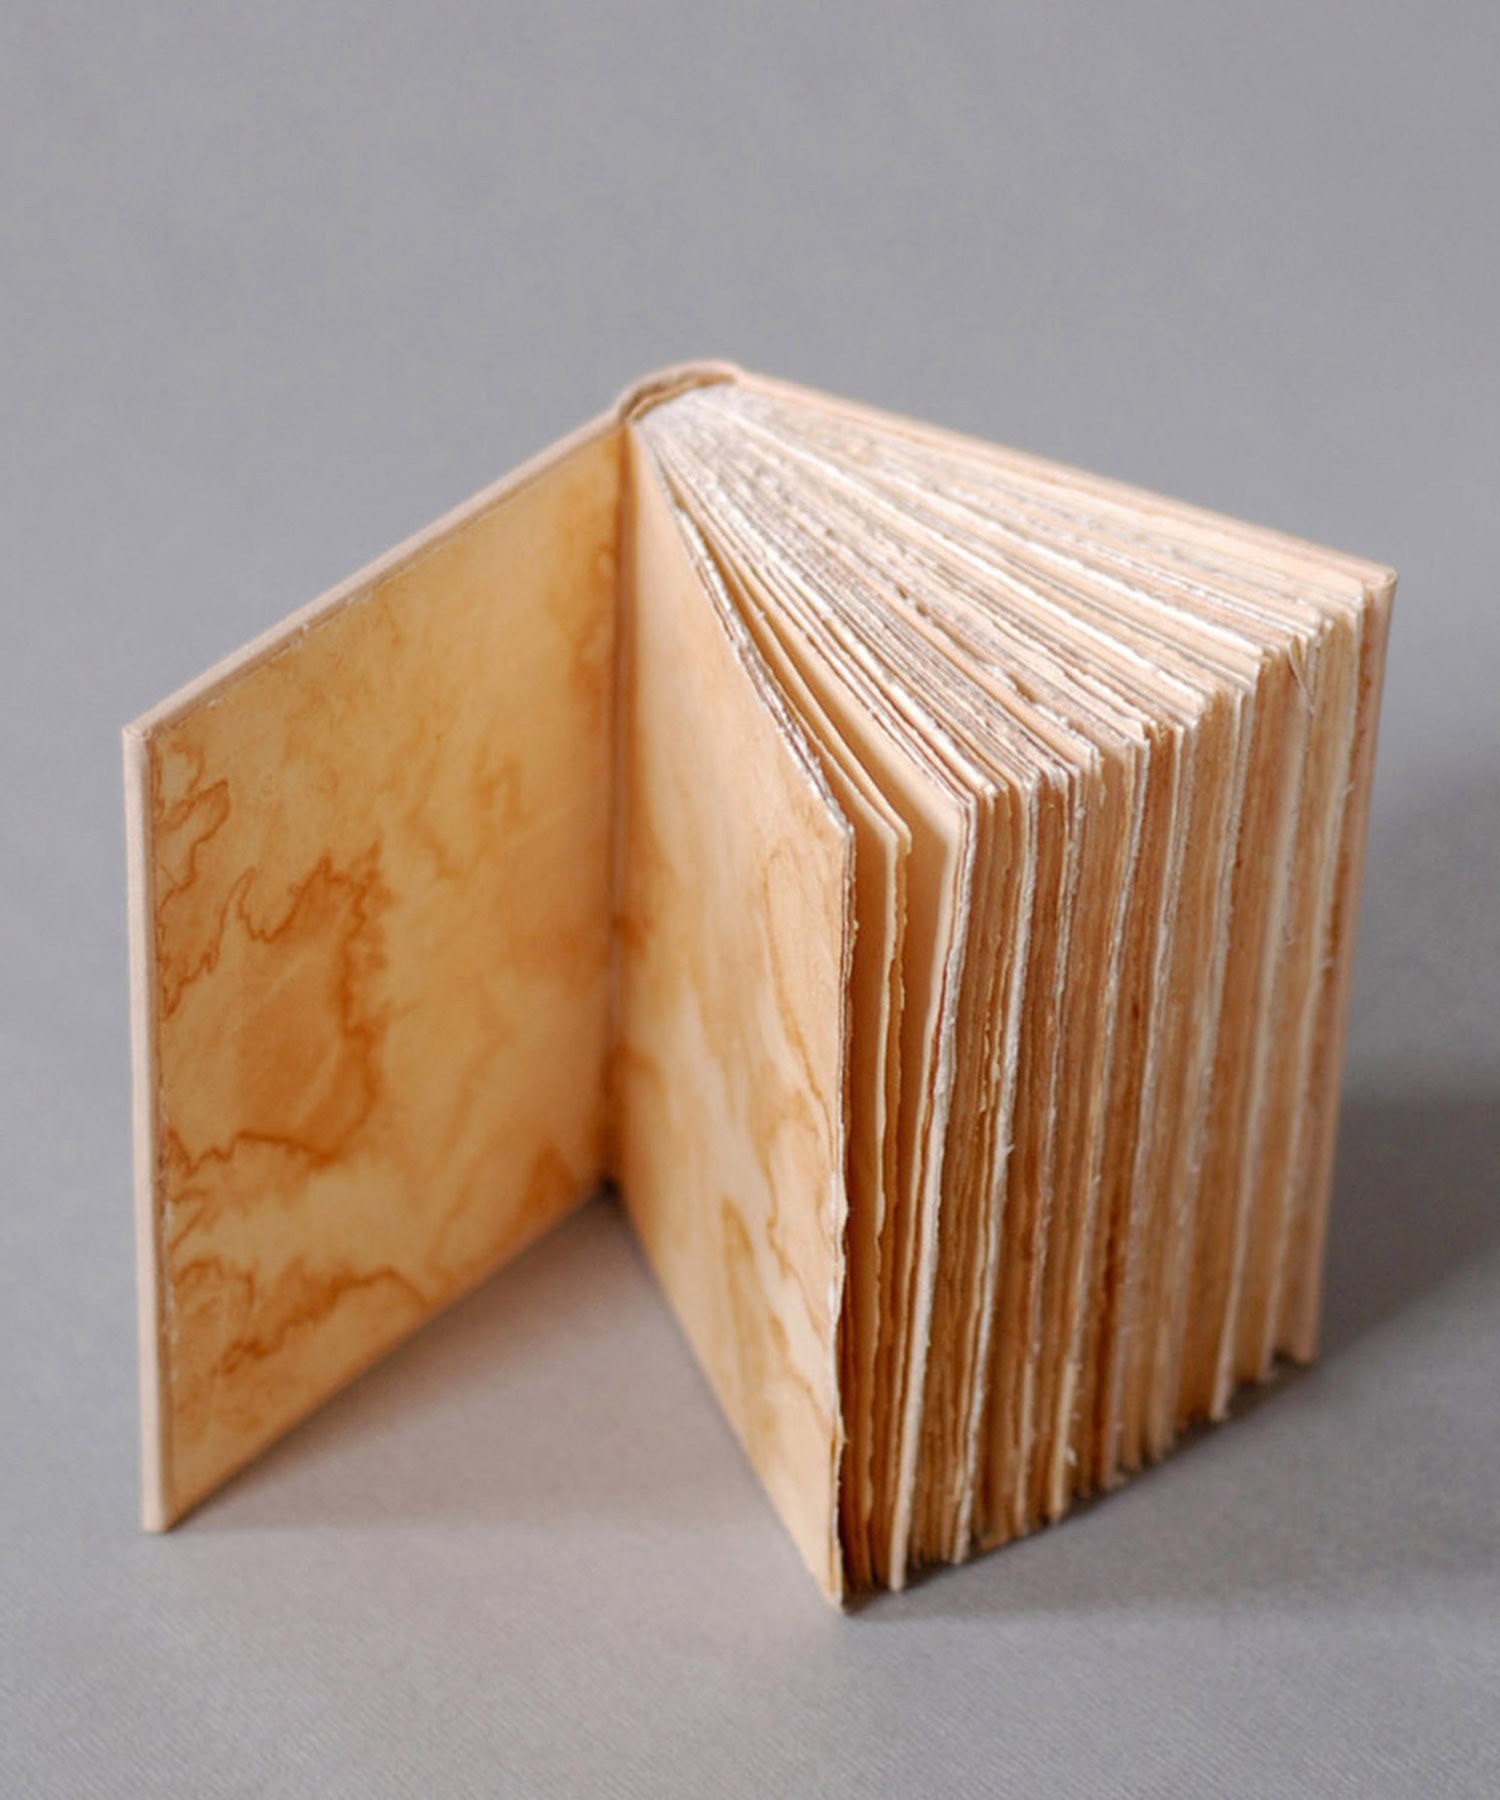 naturally dyed books by natalie stopka